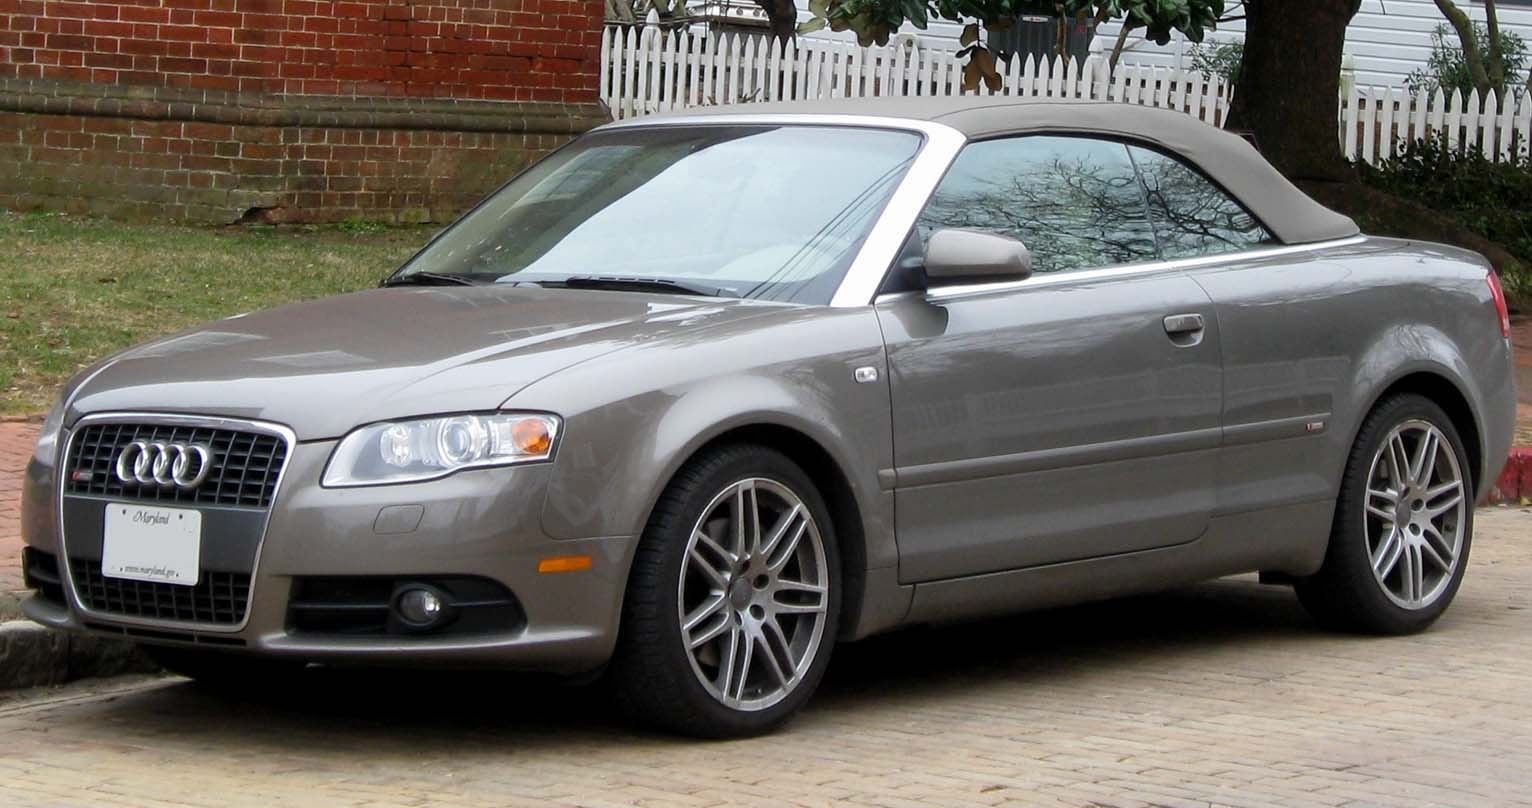 File Audi A4 S Line Convertible 03 11 2010 Jpg